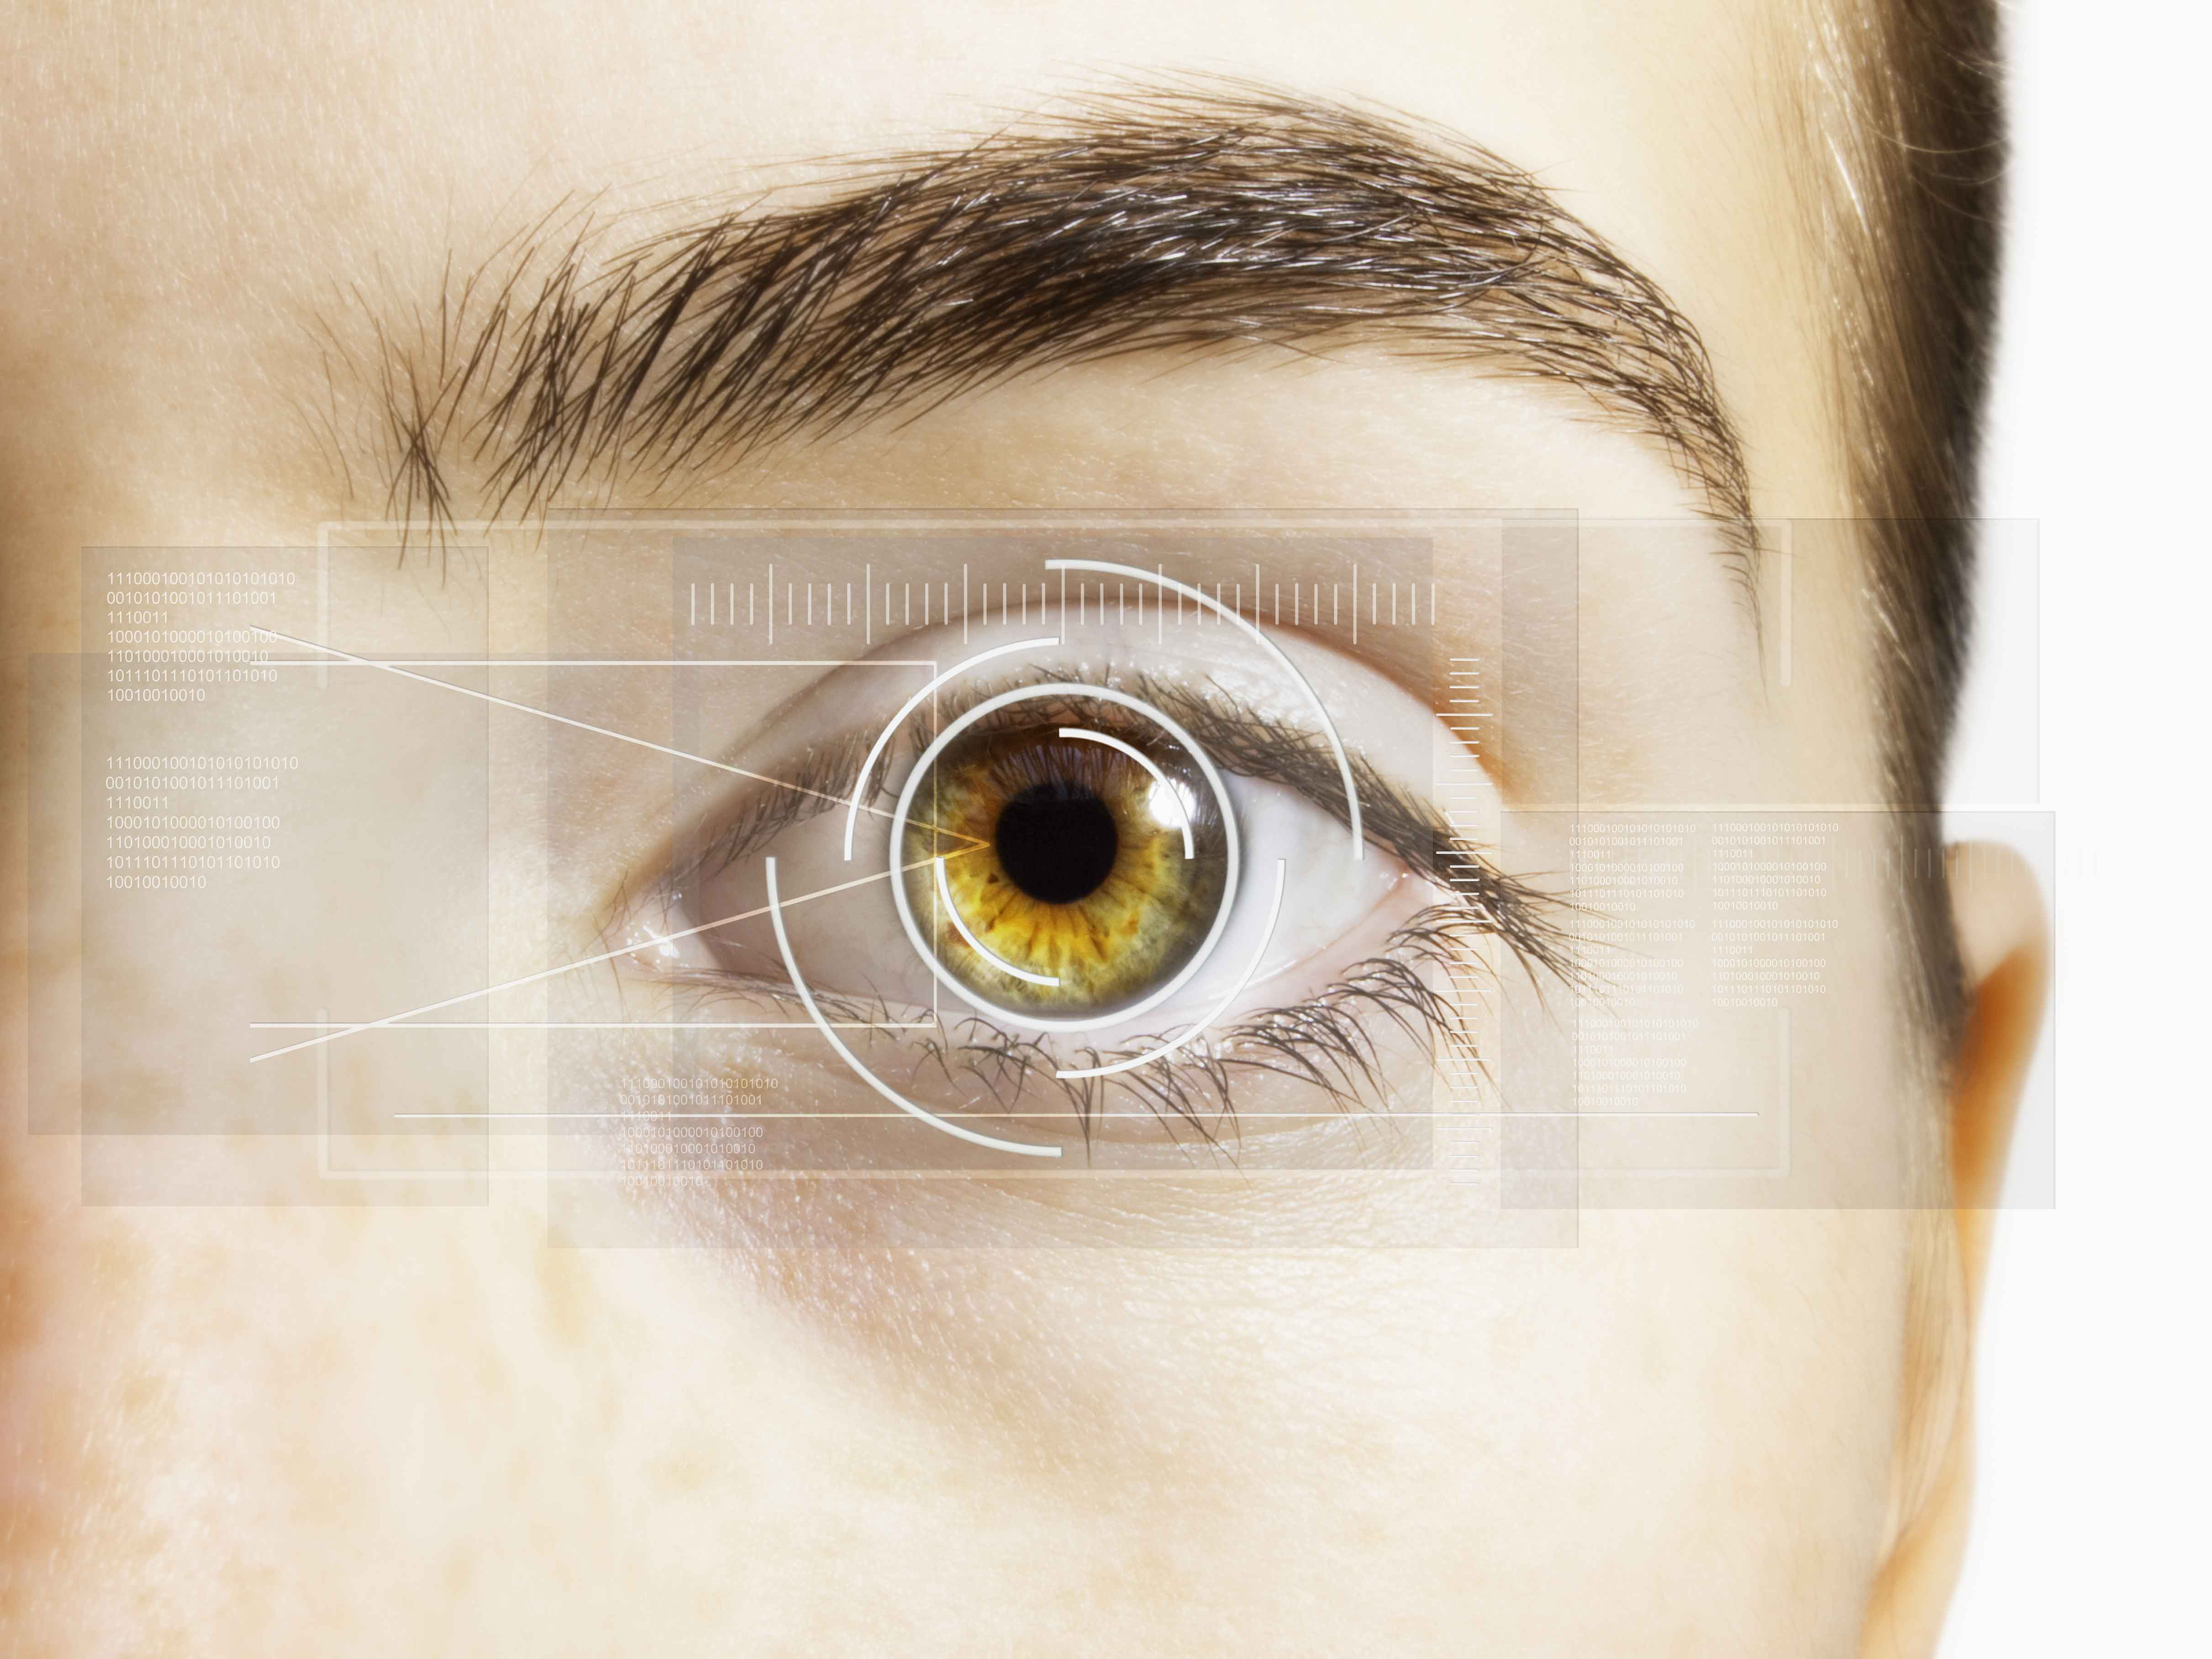 Samsung's Galaxy S8 Iris recognition not foolproof